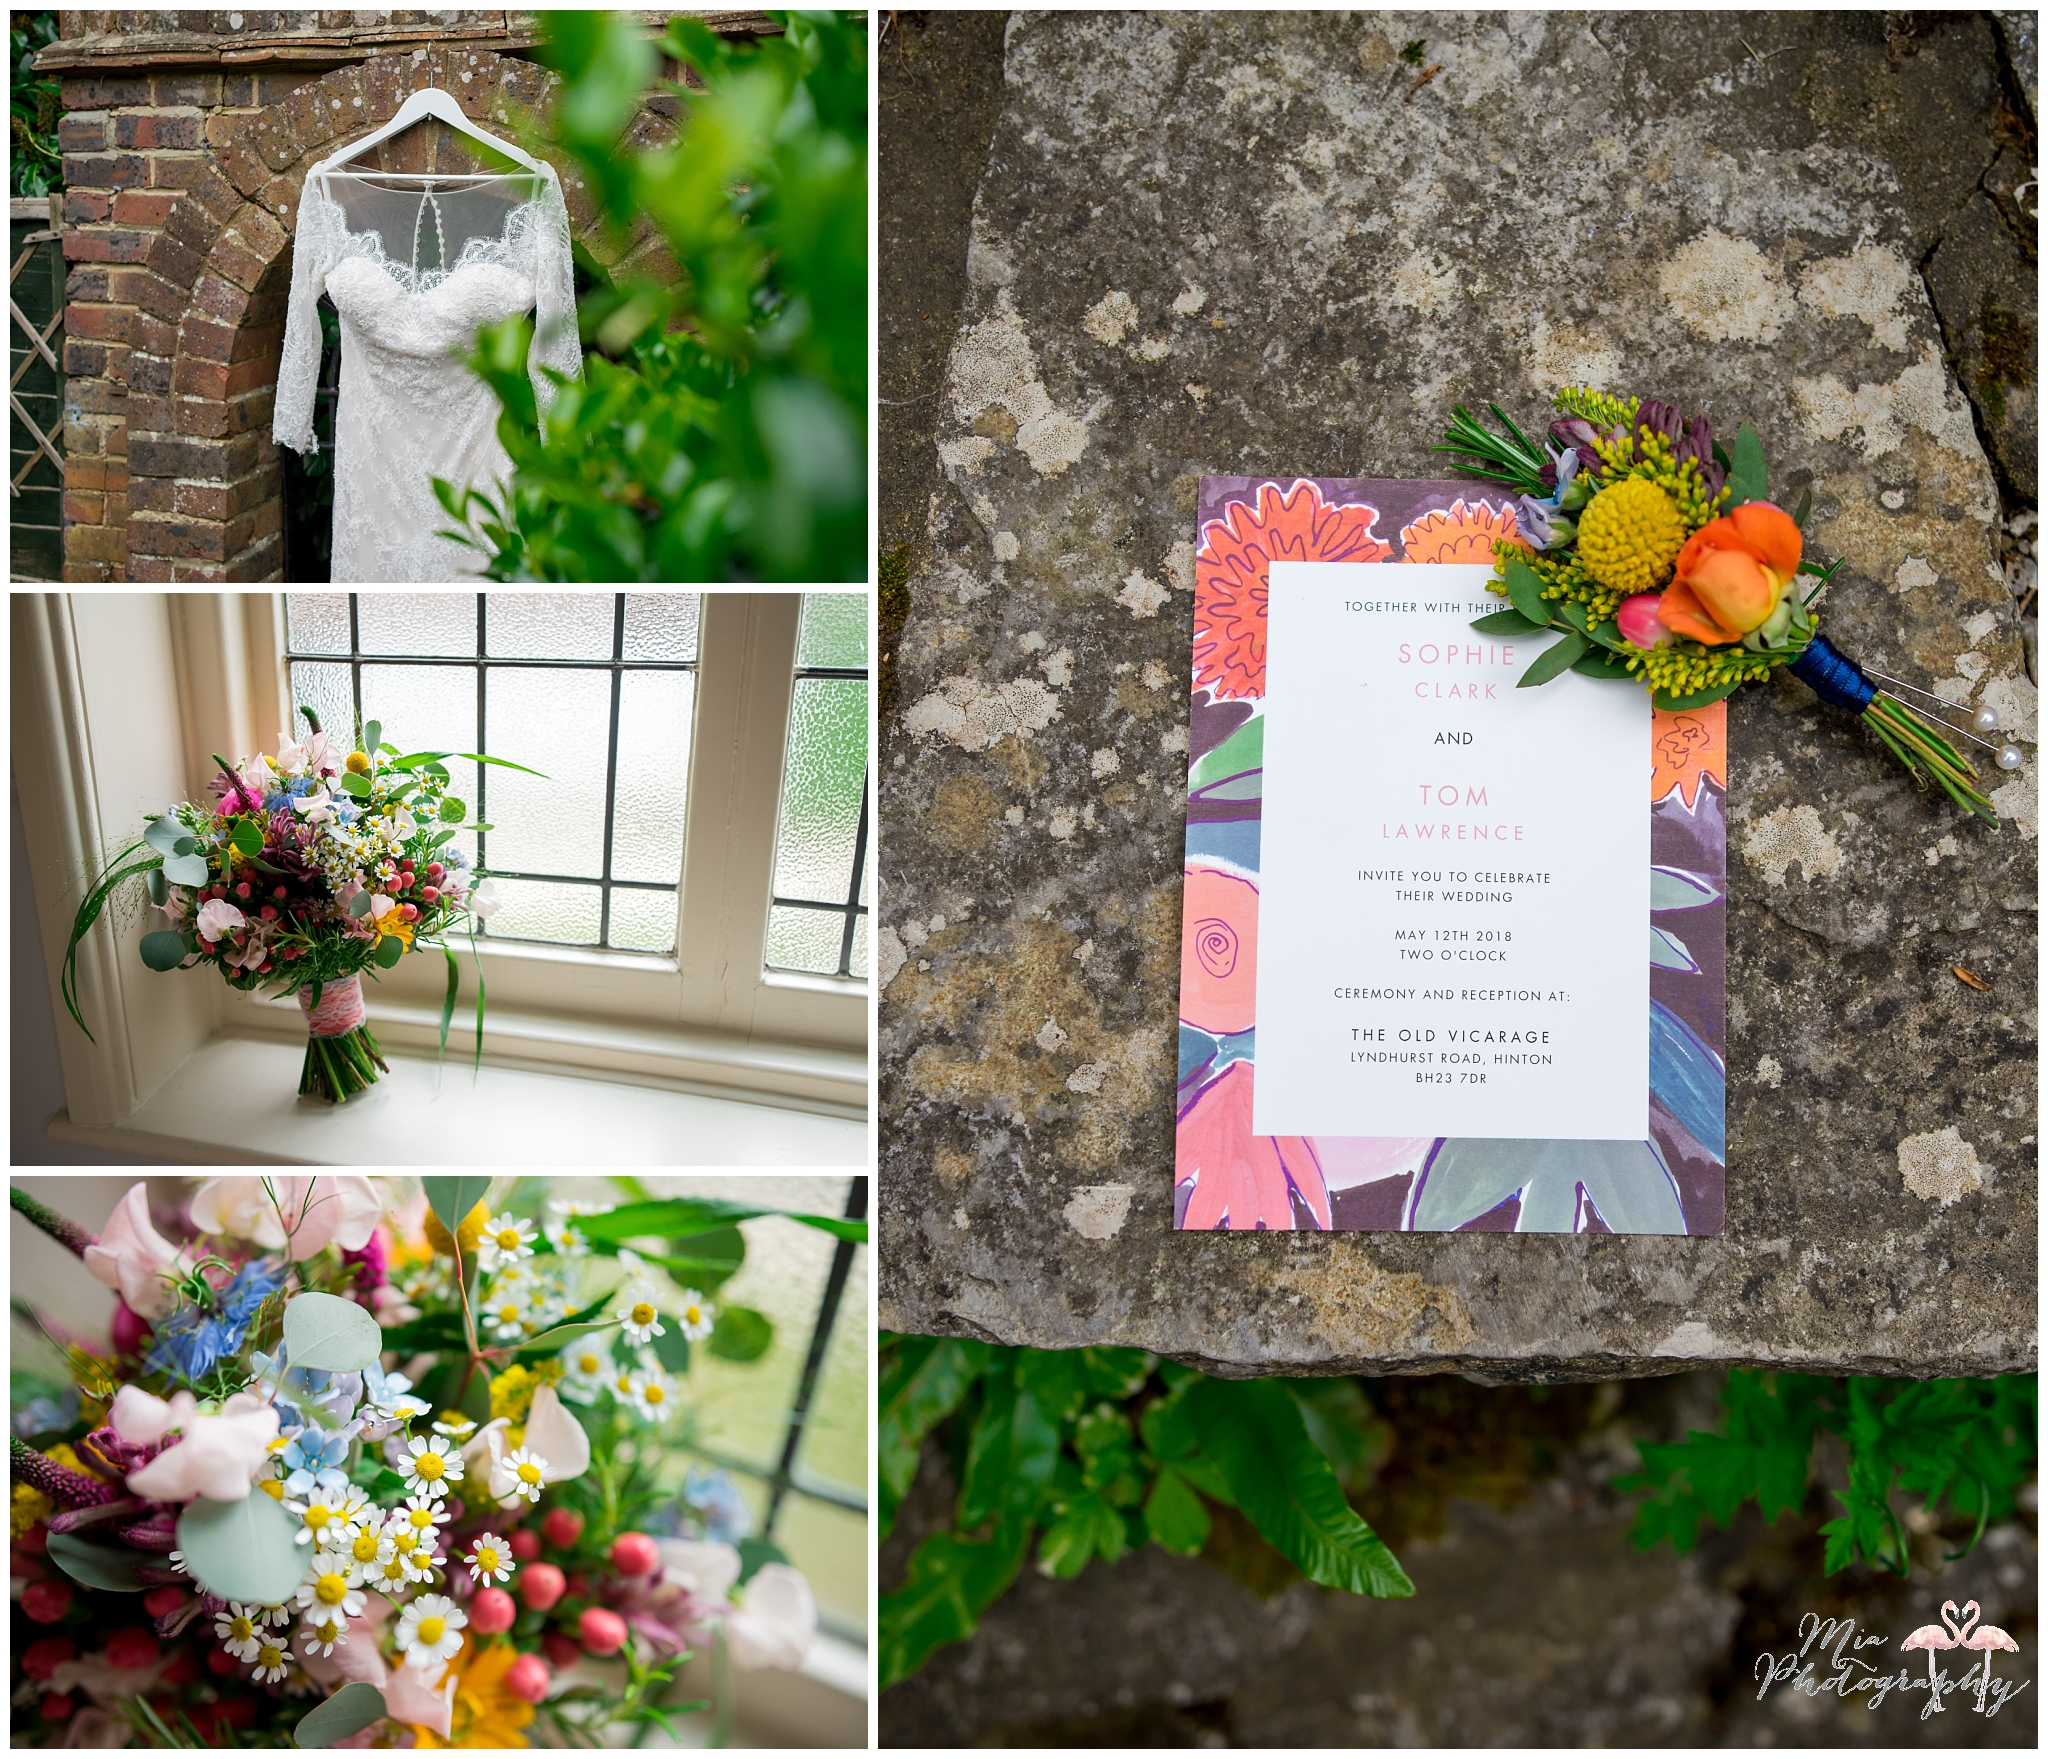 The Old Vicarage wedding photographer